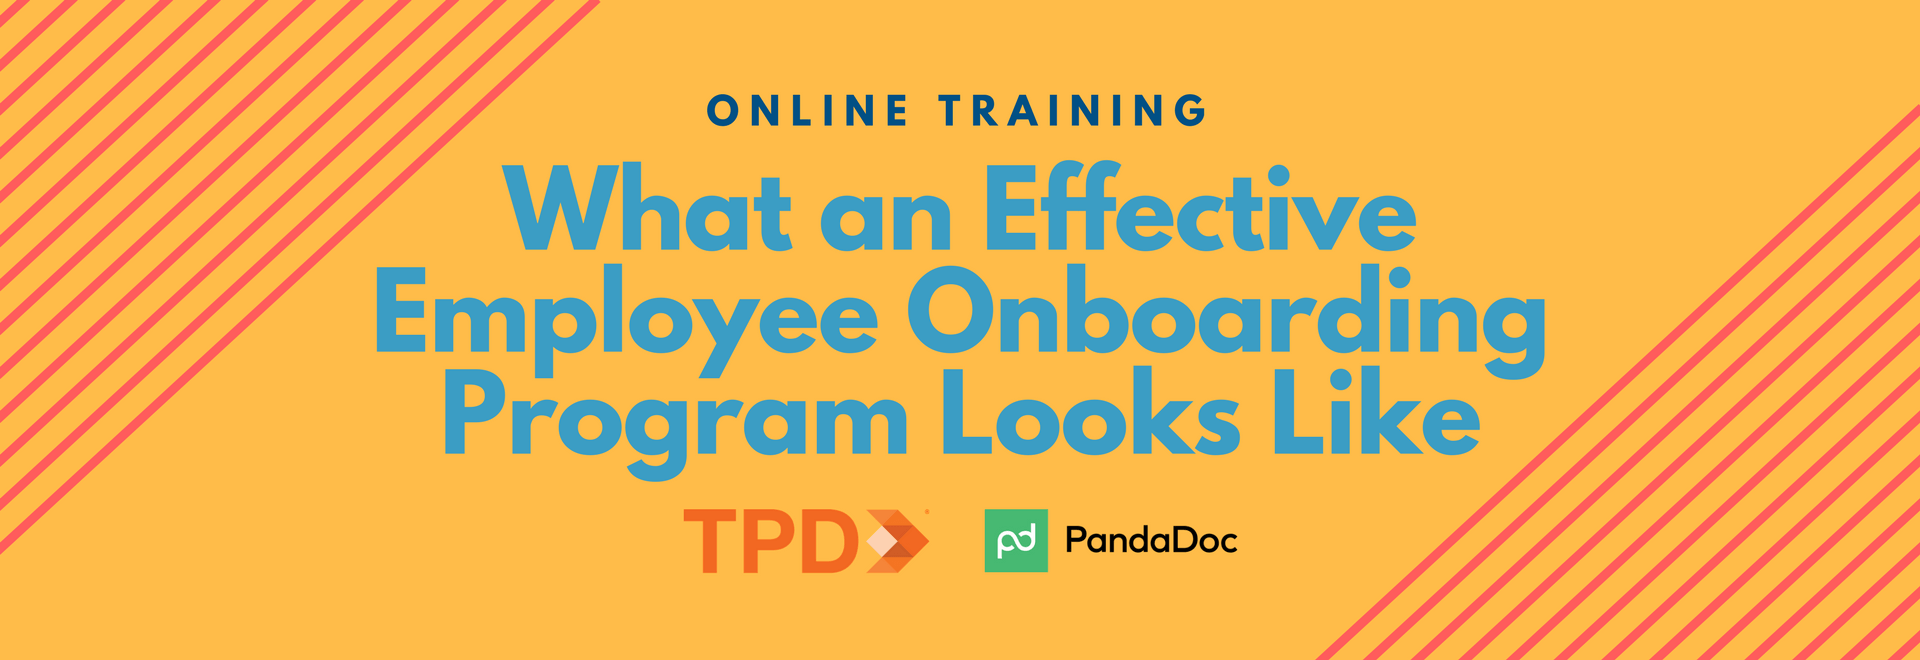 TPD.com | What an Effective Employee Onboarding Program Looks Like Webinar: Your Questions Answered!